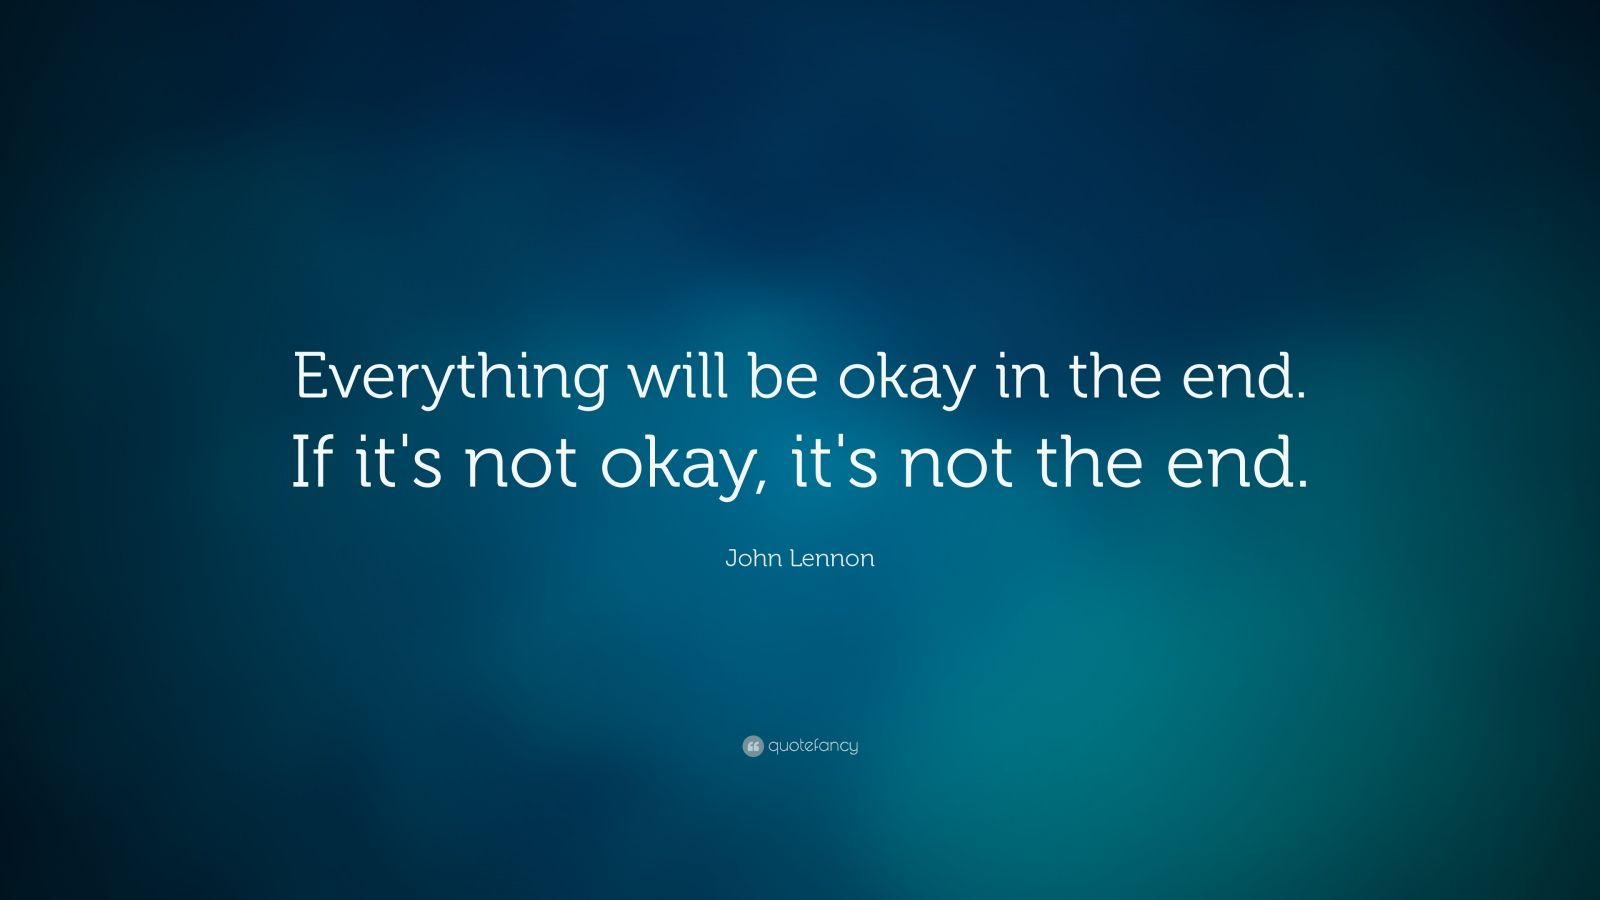 Delightful John Lennon Quote: U201cEverything Will Be Okay In The End. If Itu0027s Not